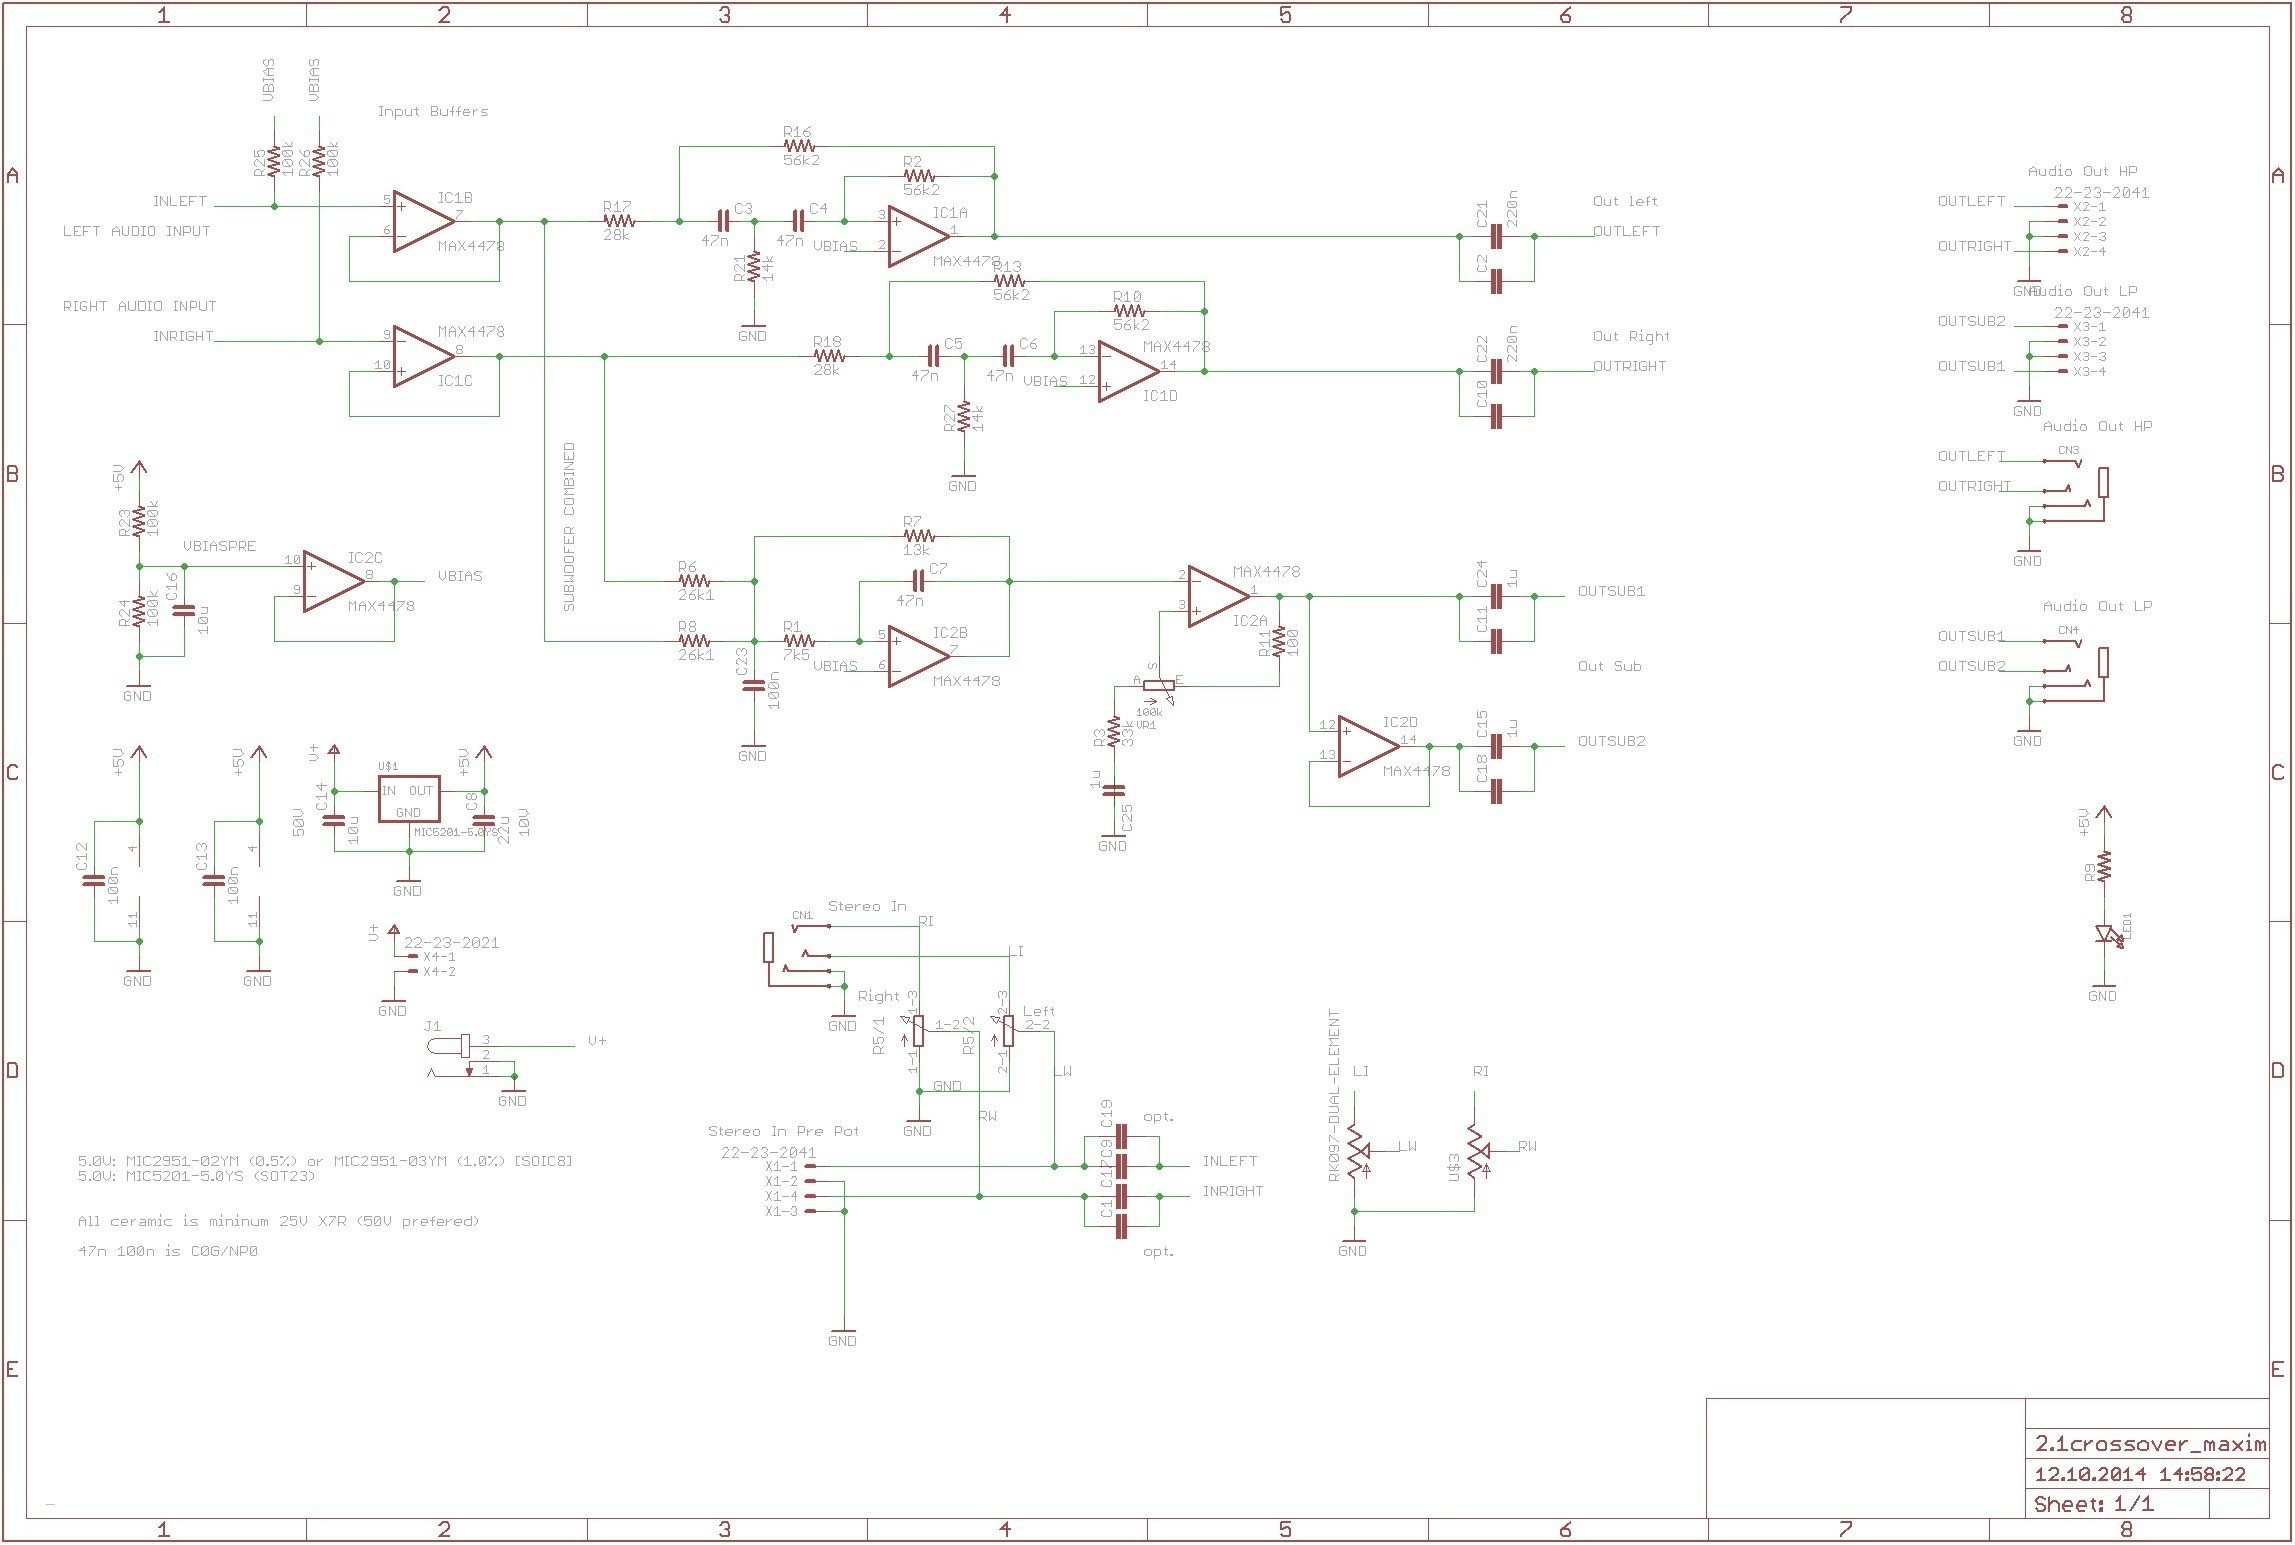 Aktive Crossoverfrequenzweiche Mit Max4478 360customs Crossover Schematic Rev 0d wiring lighting circuit scr circuit Diagram